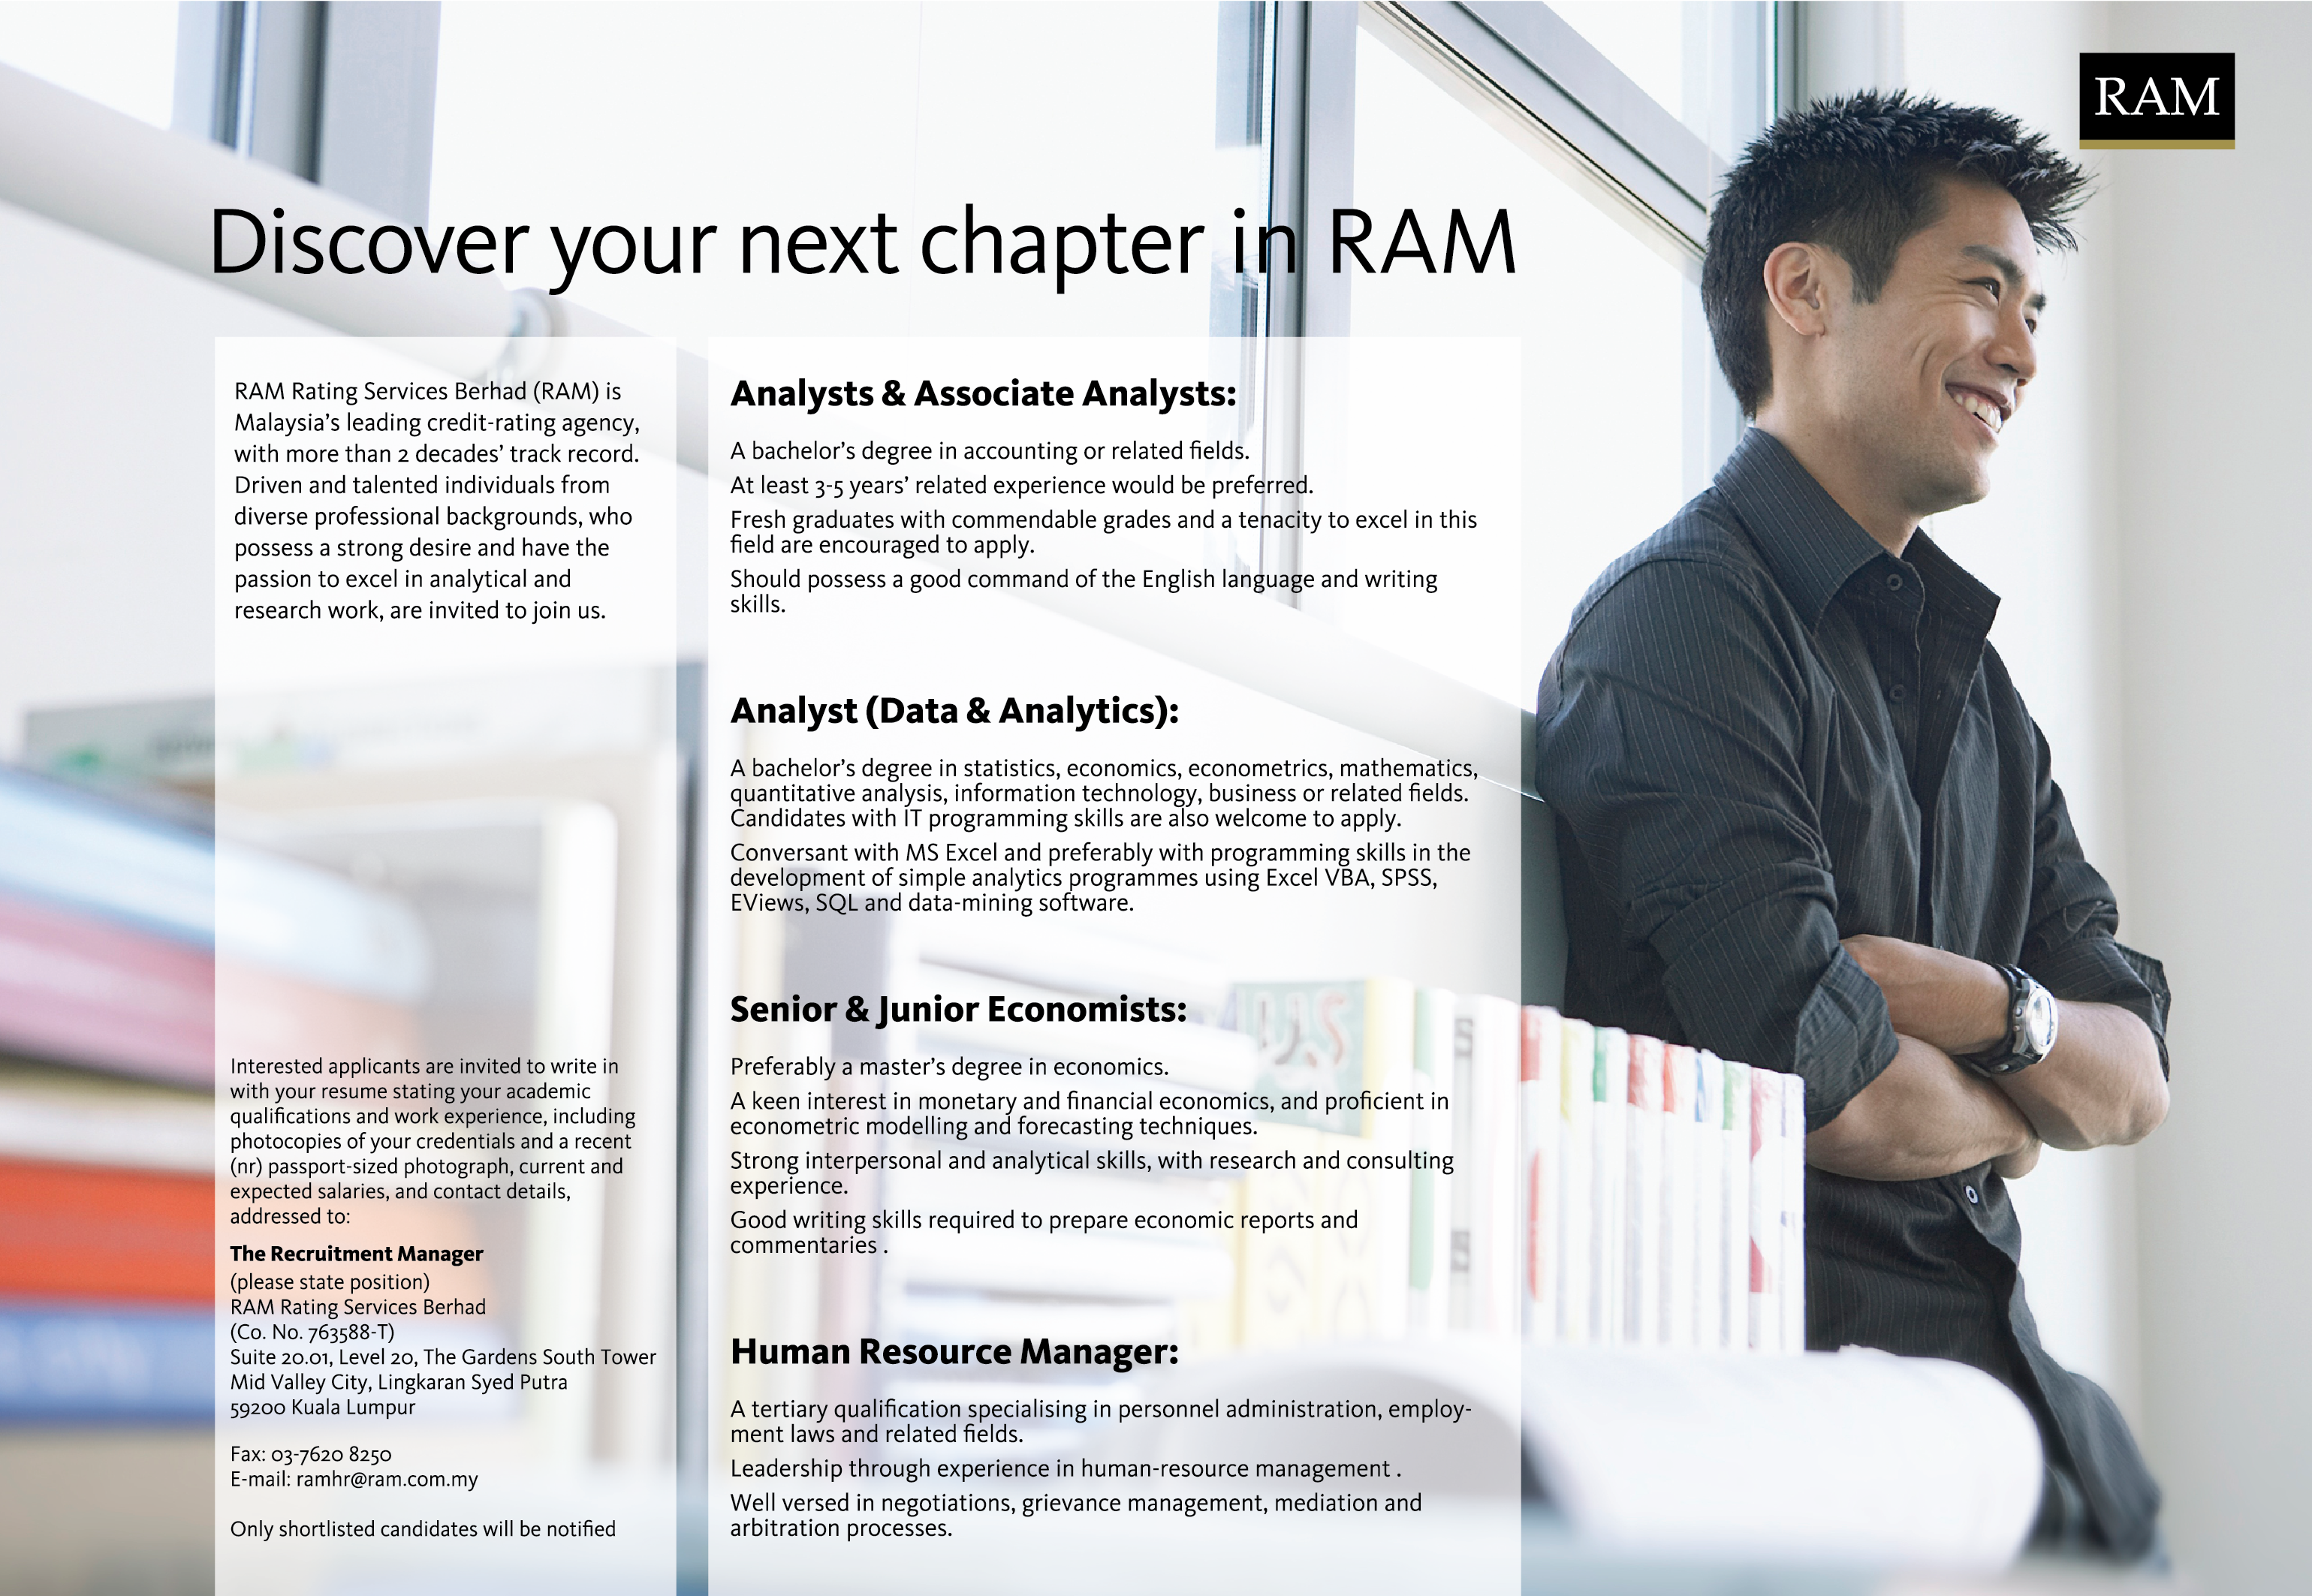 RAM recruitment ad